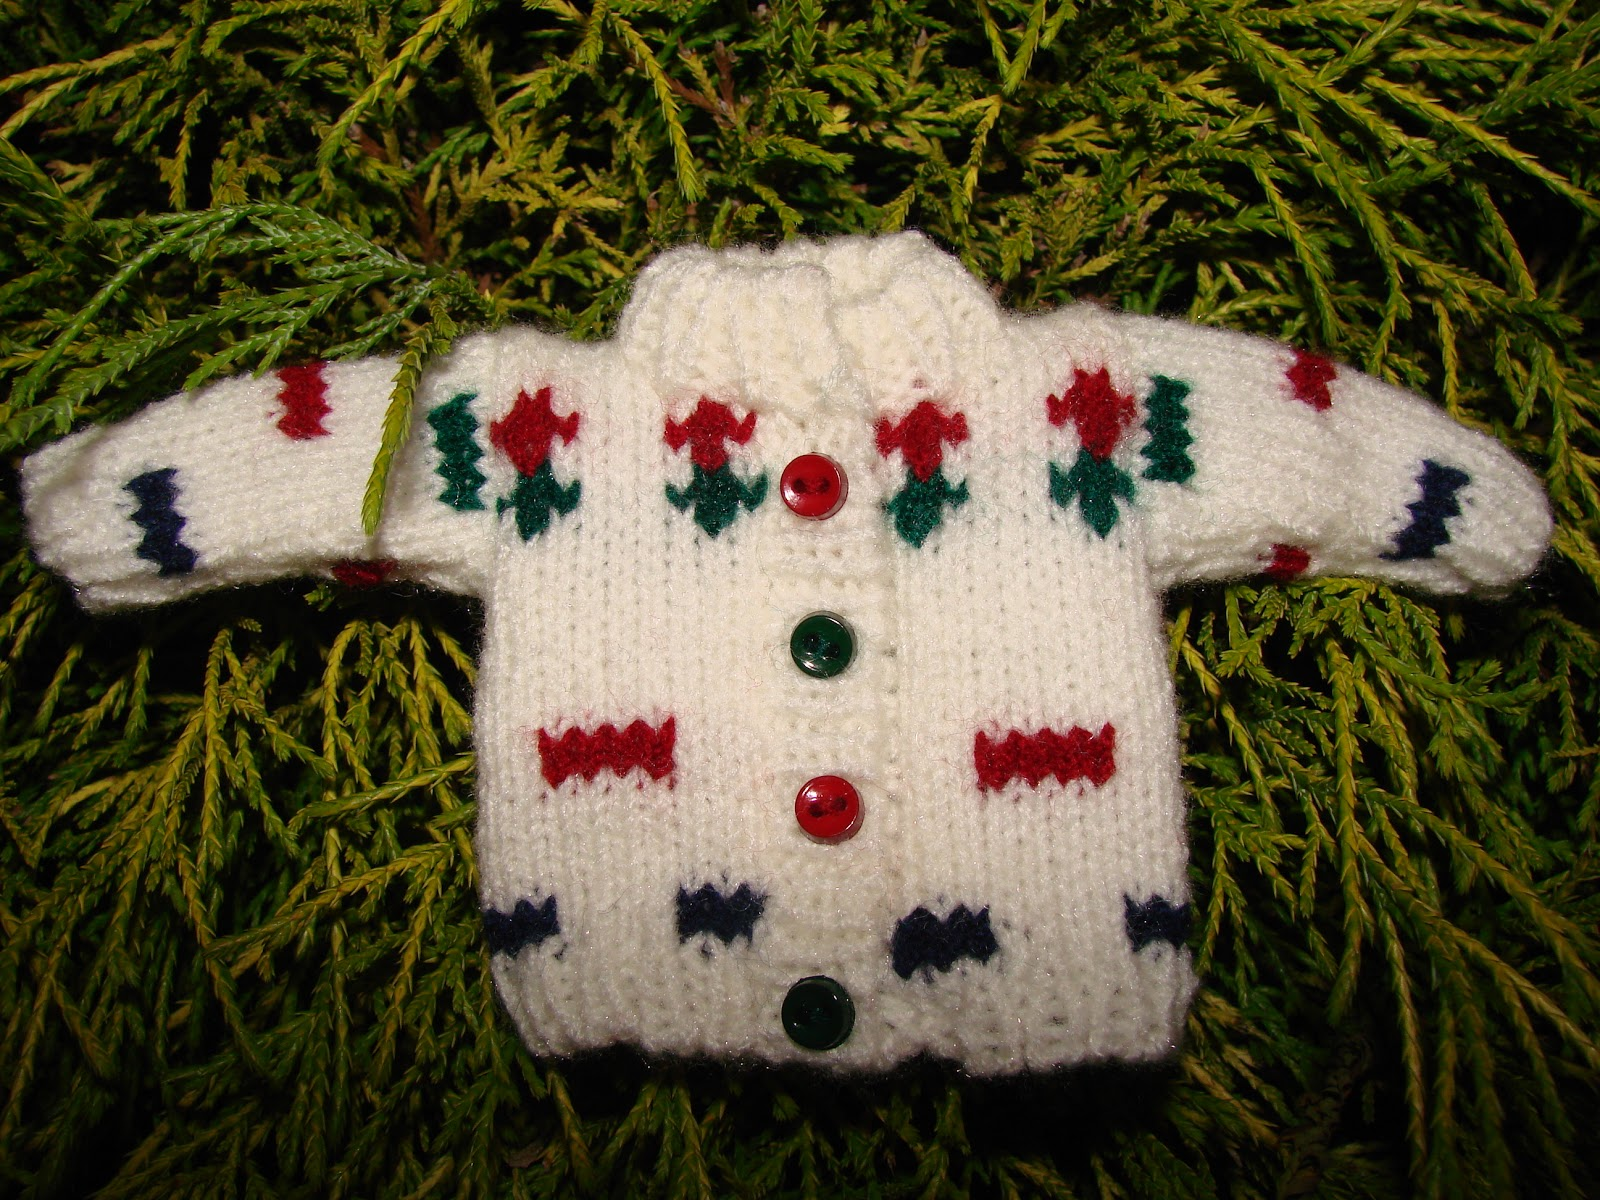 Family Crafts and Recipes: Knitted Christmas Ornaments- Free Pattern Included